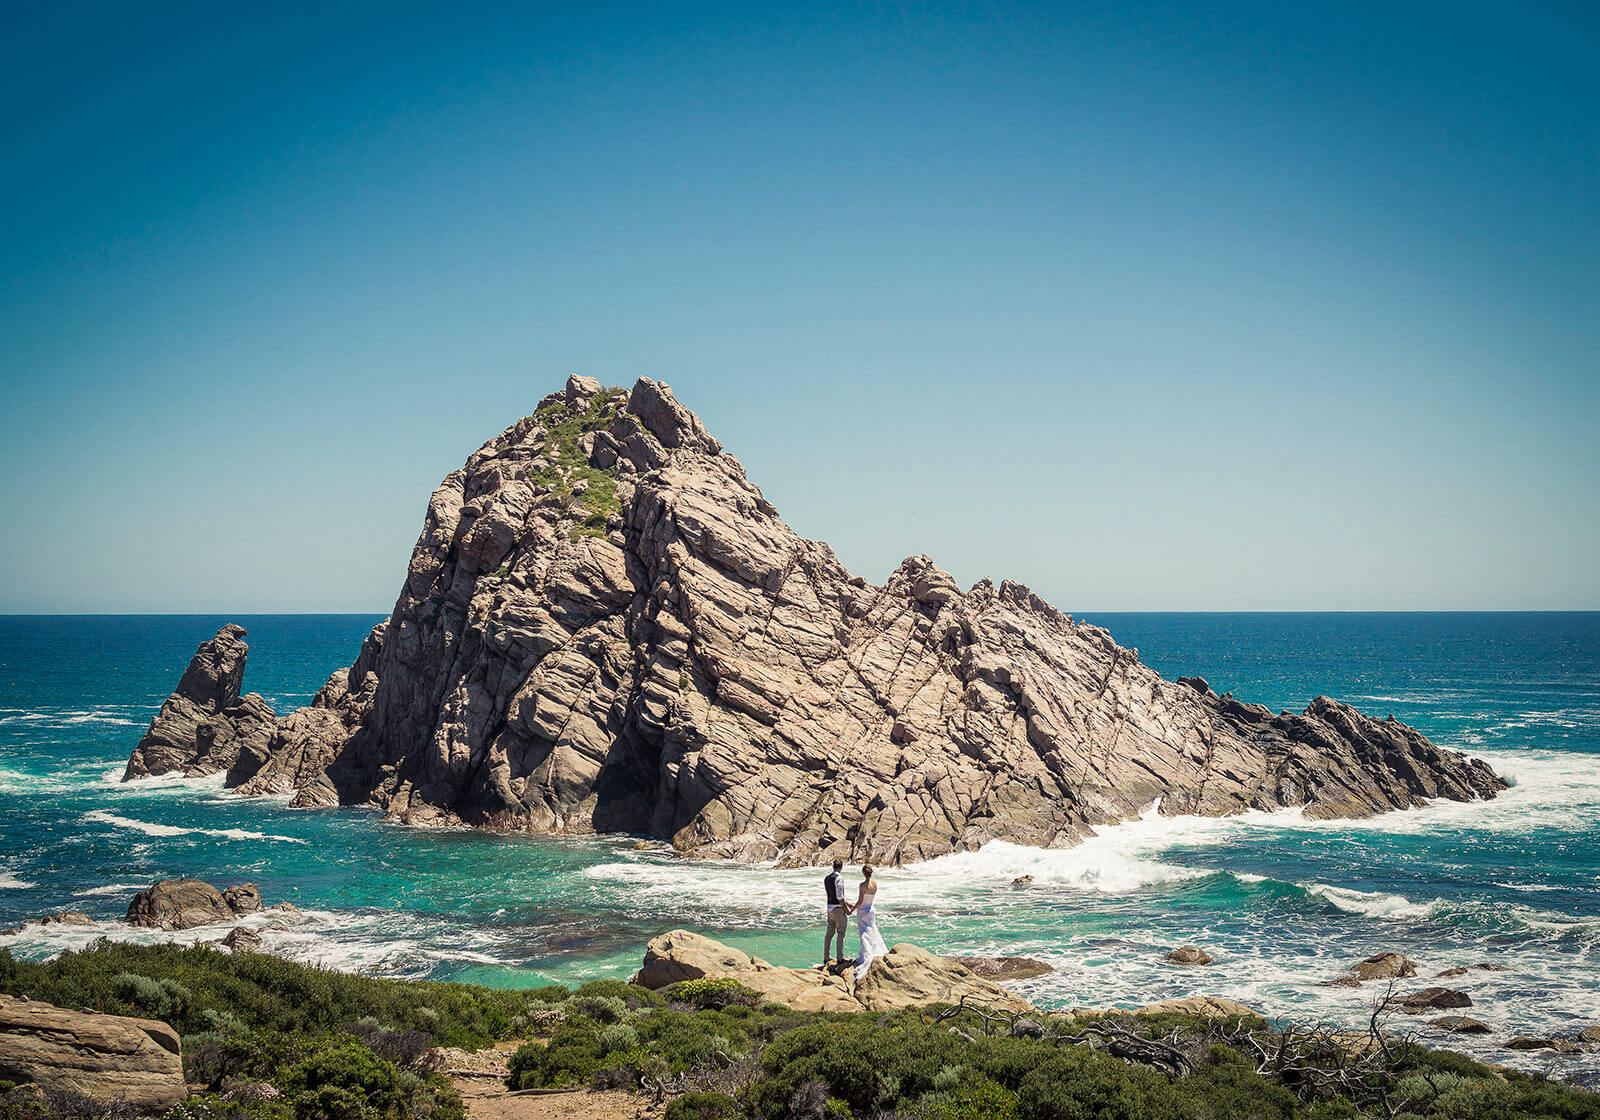 Sugarloaf Rock, Dunsborough Wedding Photography by Peter Adams-Shawn